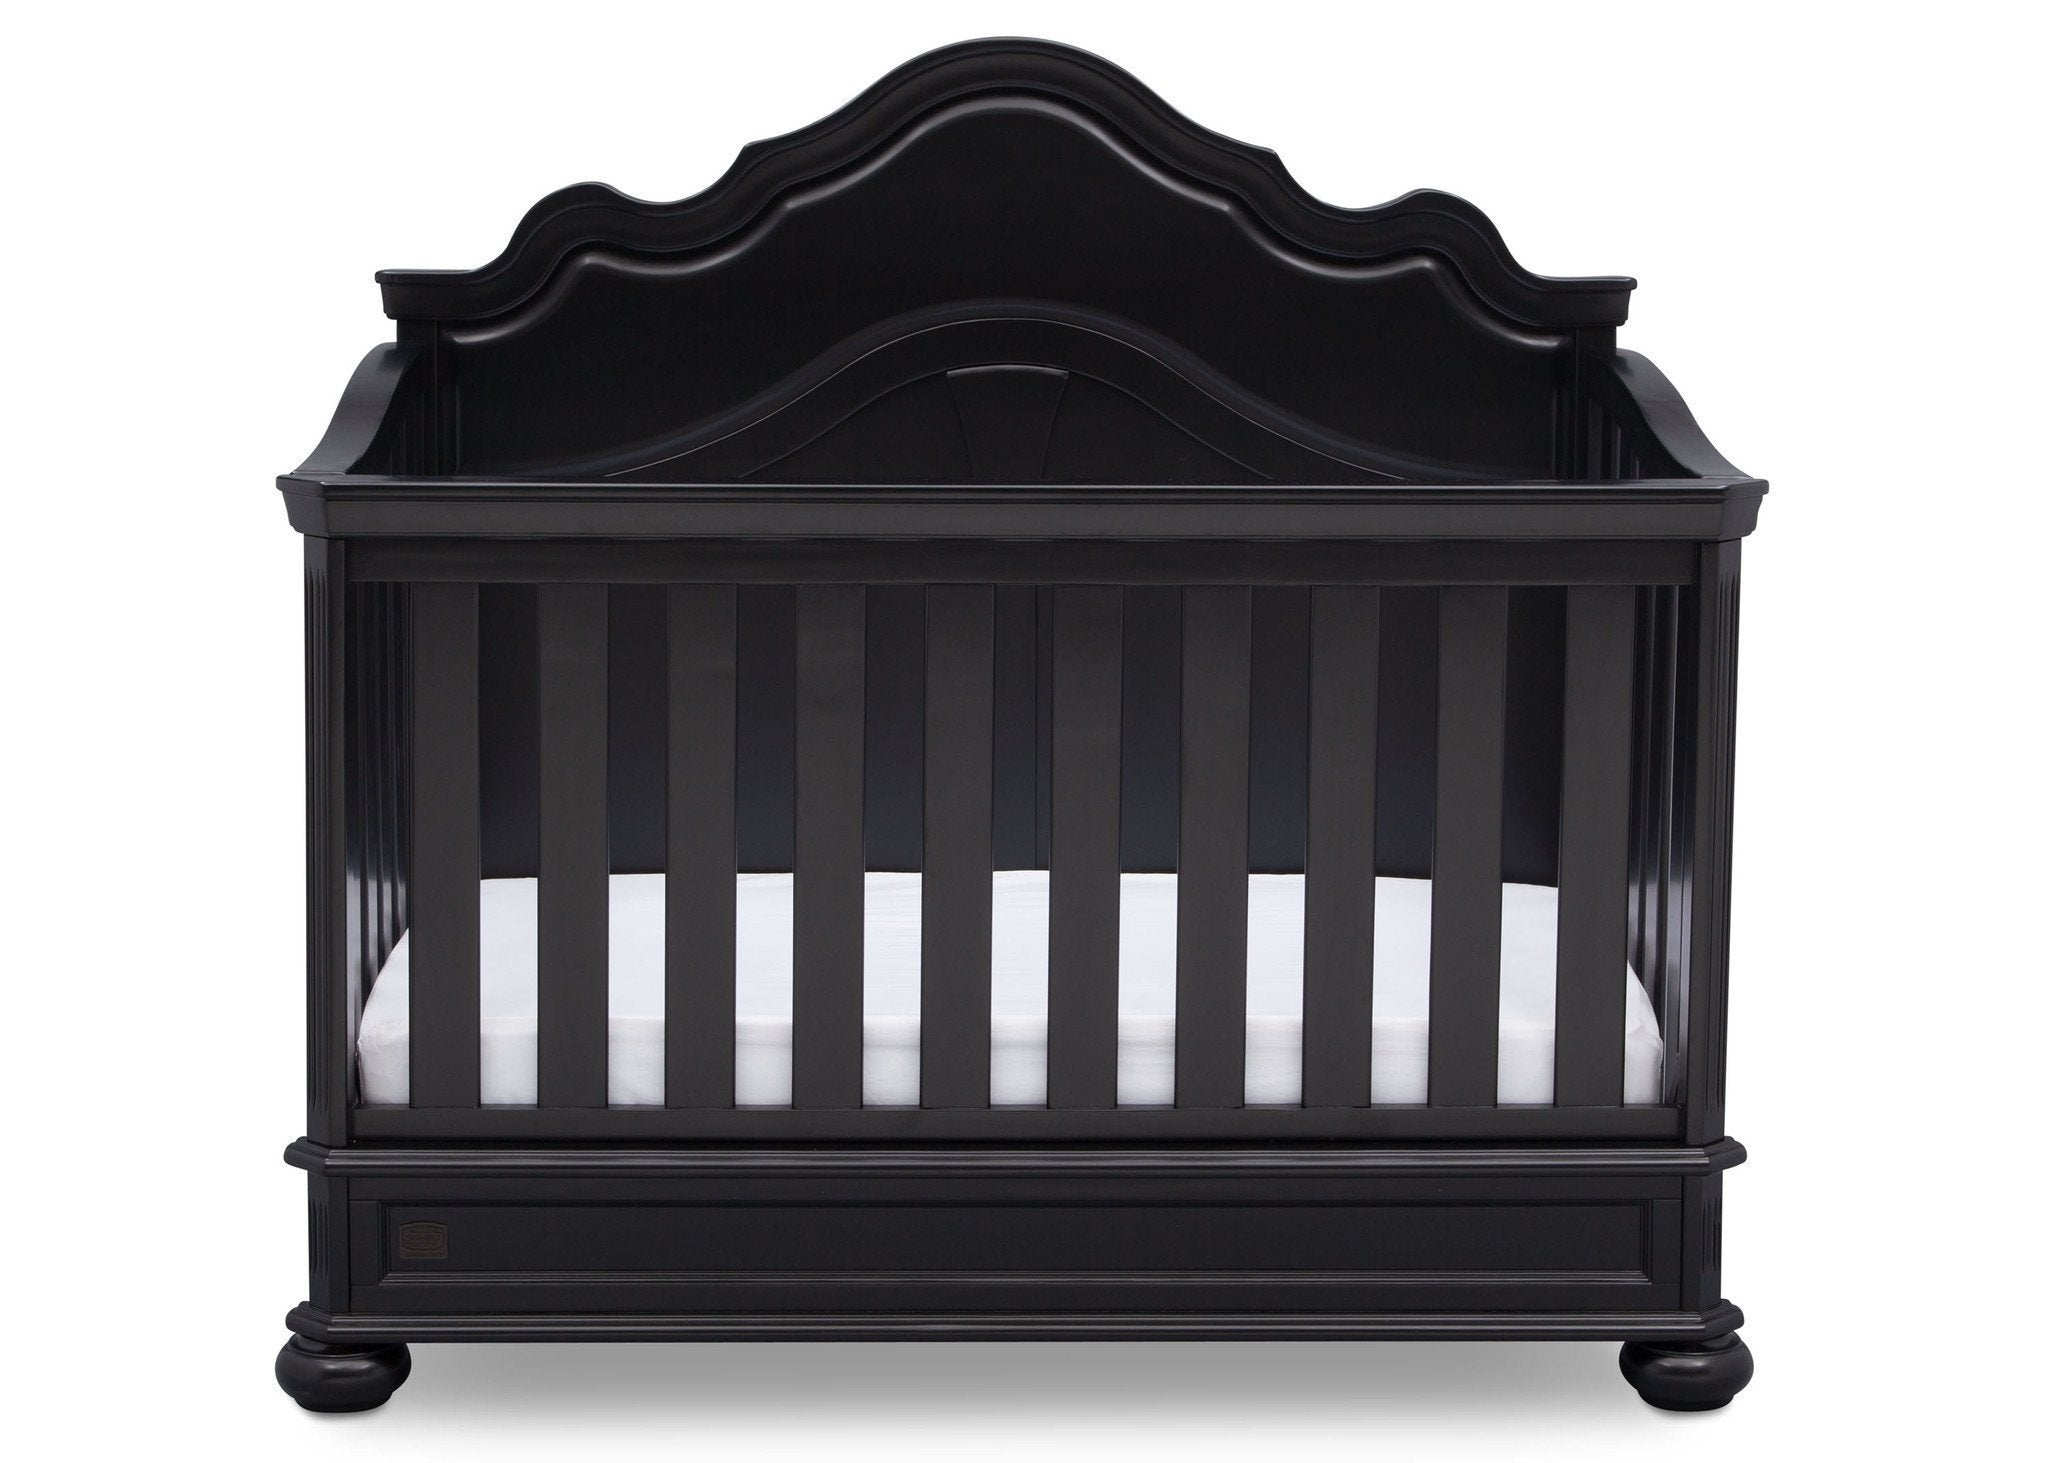 Simmons Kids Ebony (0011) Peyton Crib n' more front view b2b